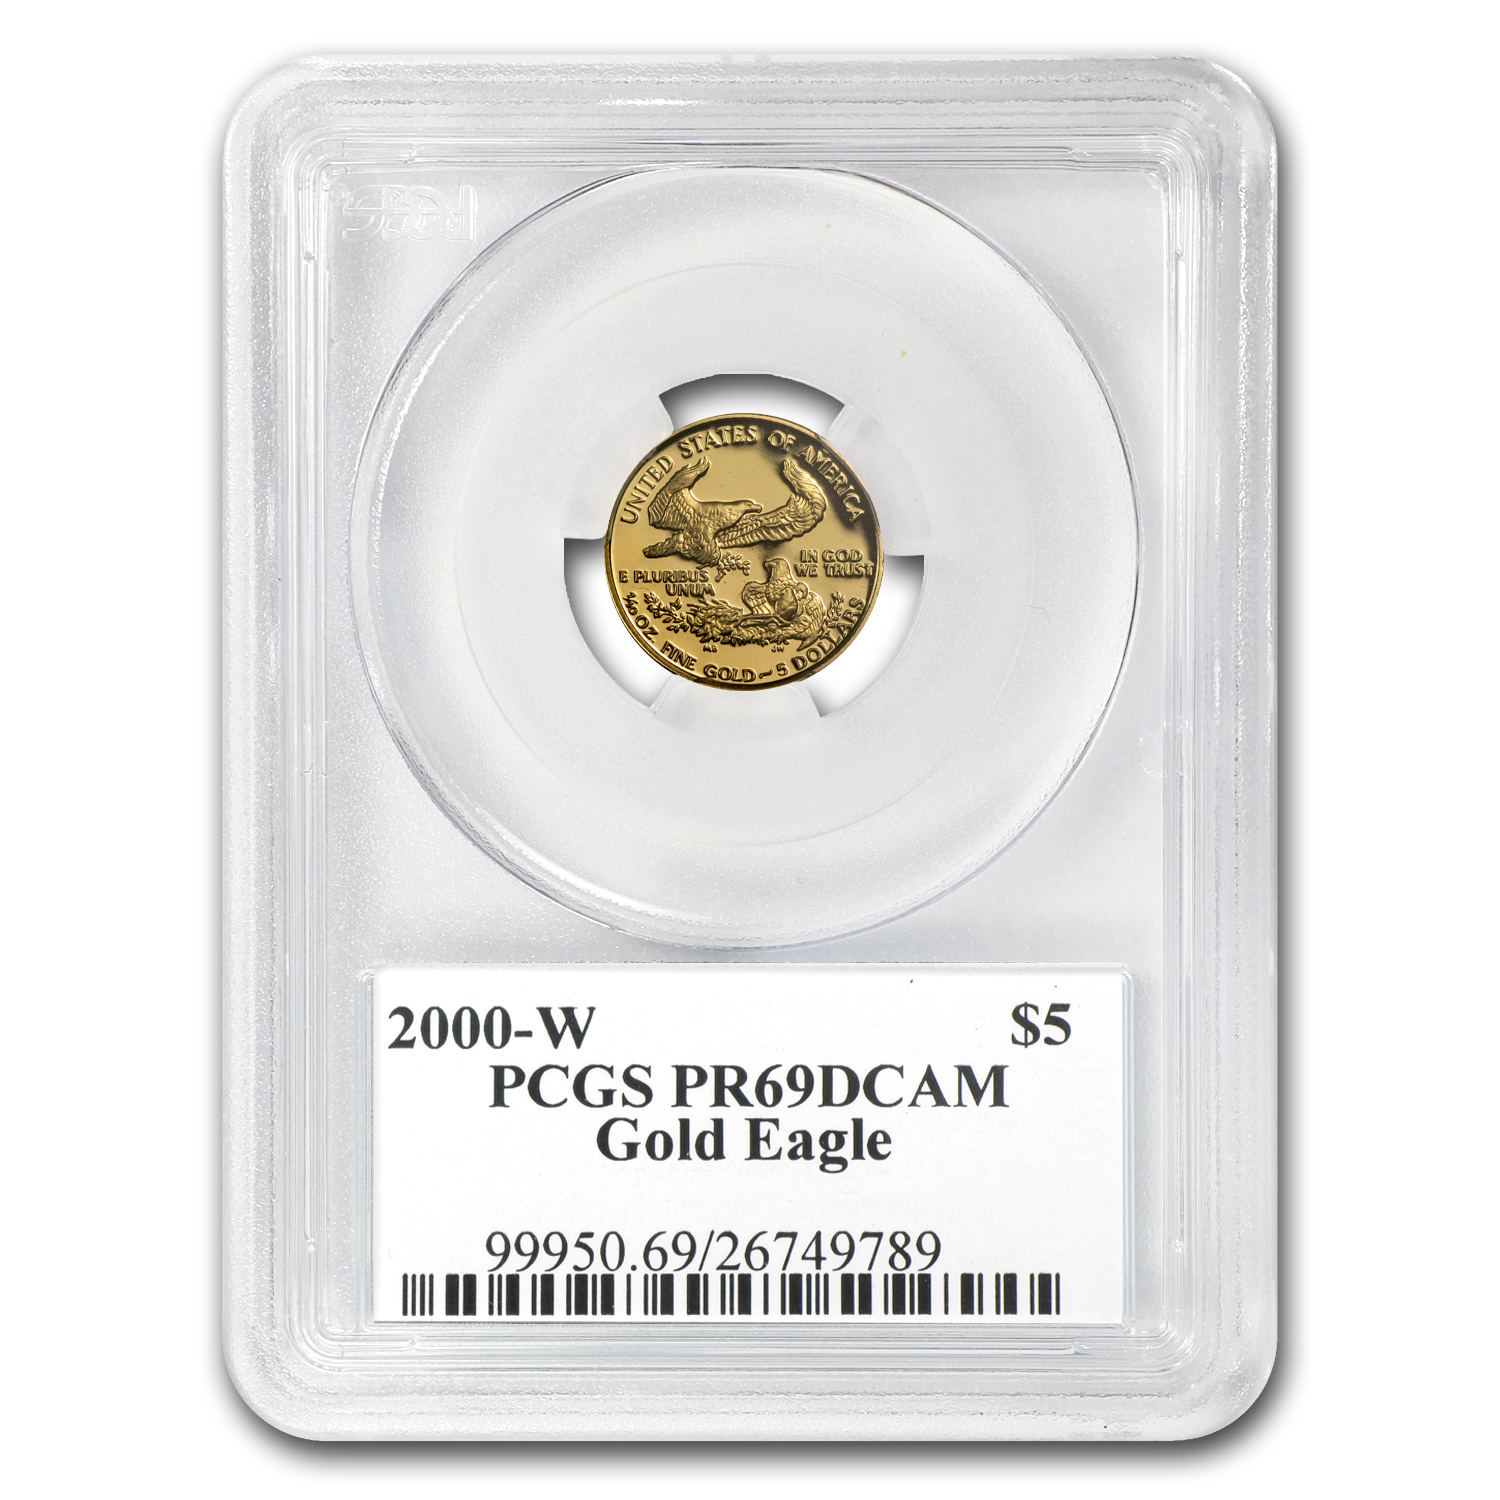 2000-W 1/10 oz Proof Gold American Eagle PR-69 PCGS John Mercanti